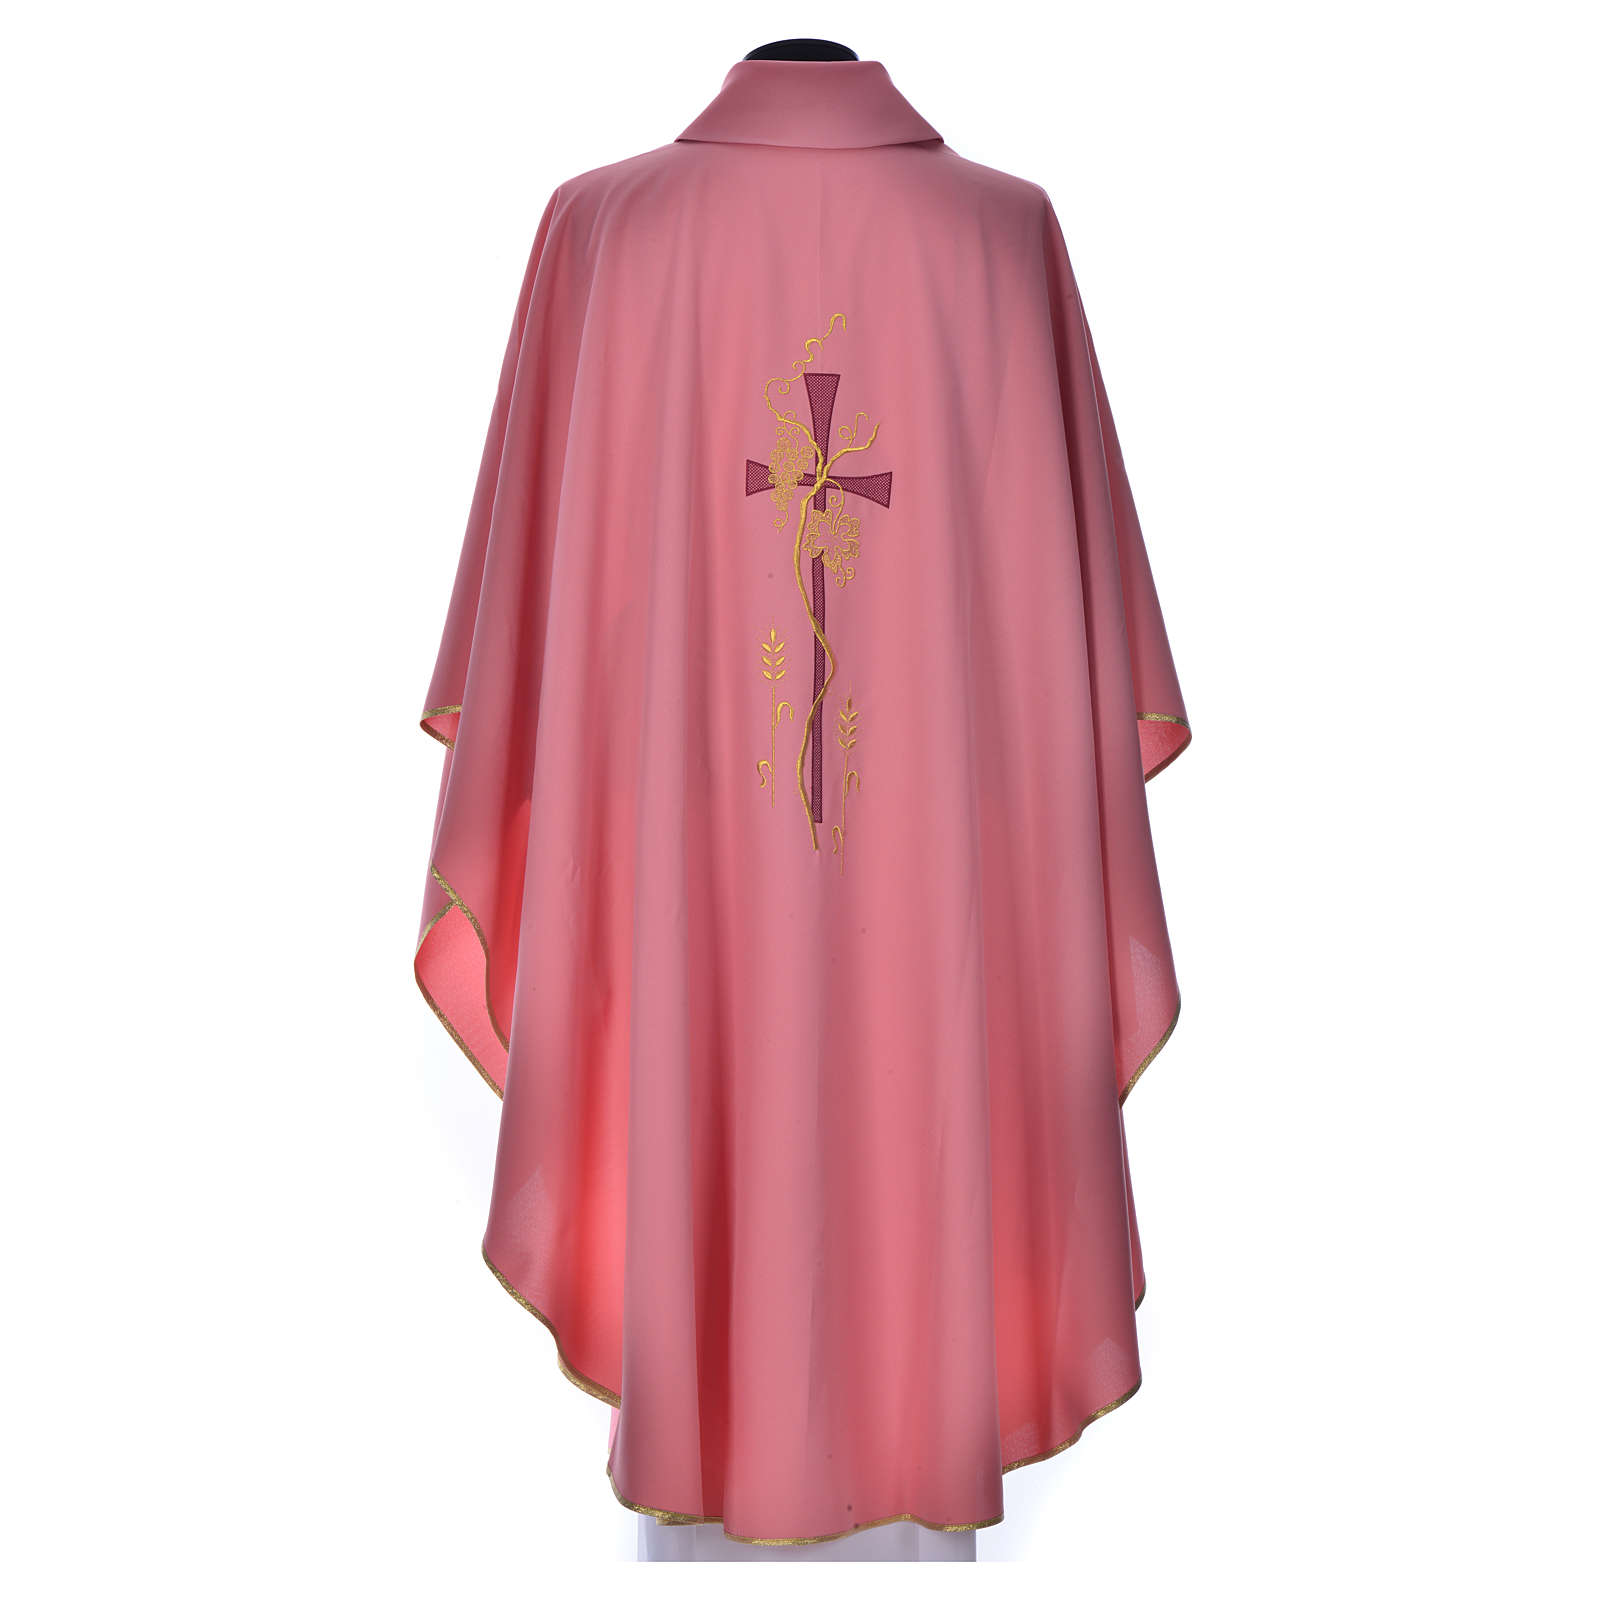 Pink Priest Chasuble with cross embroidery 4